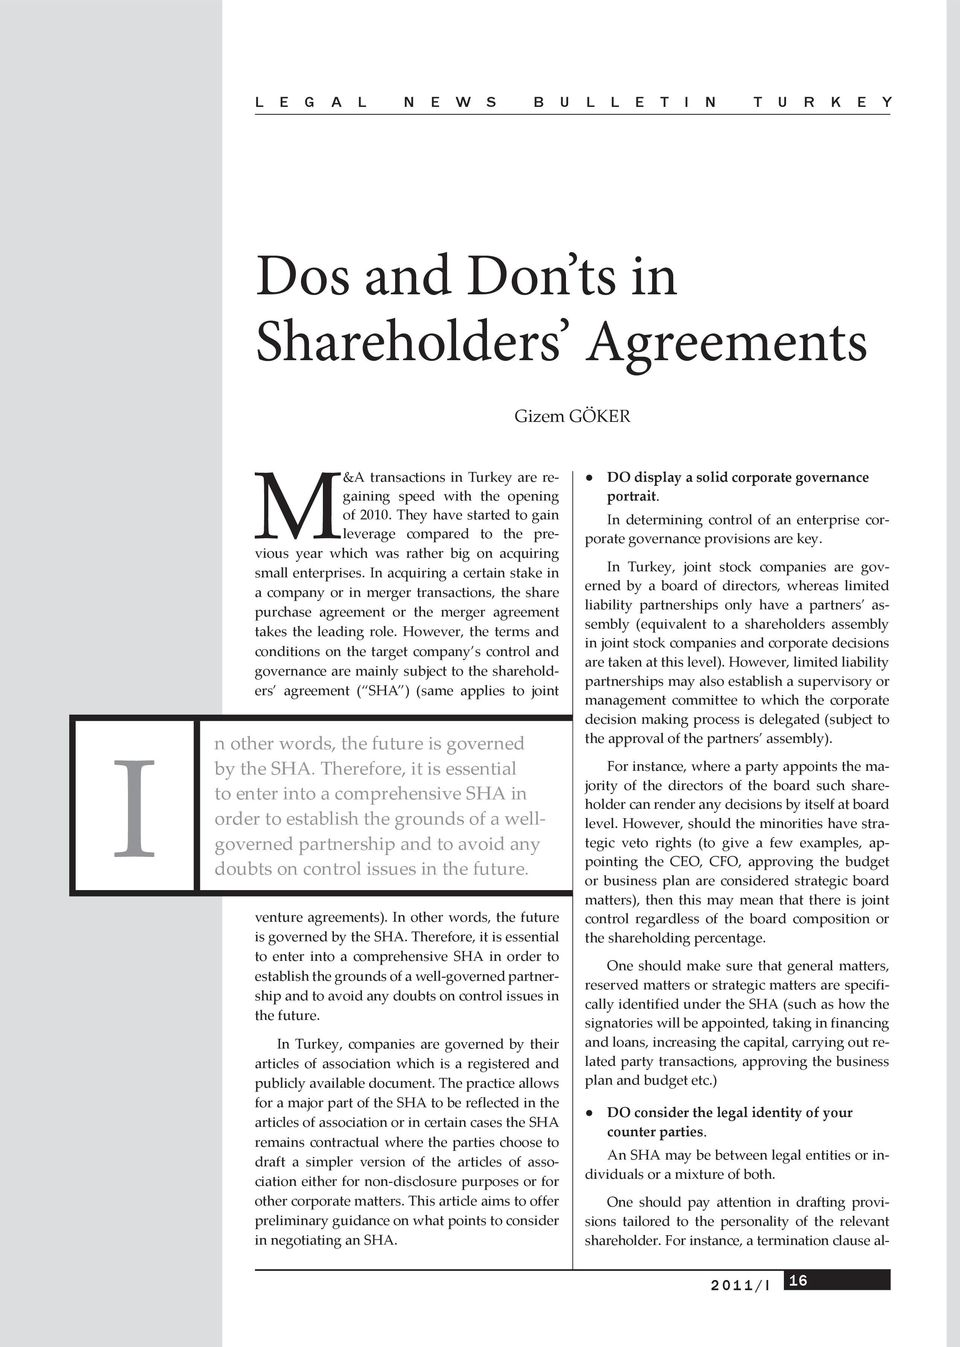 In acquiring a certain stake in a company or in merger transactions, the share purchase agreement or the merger agreement takes the leading role.